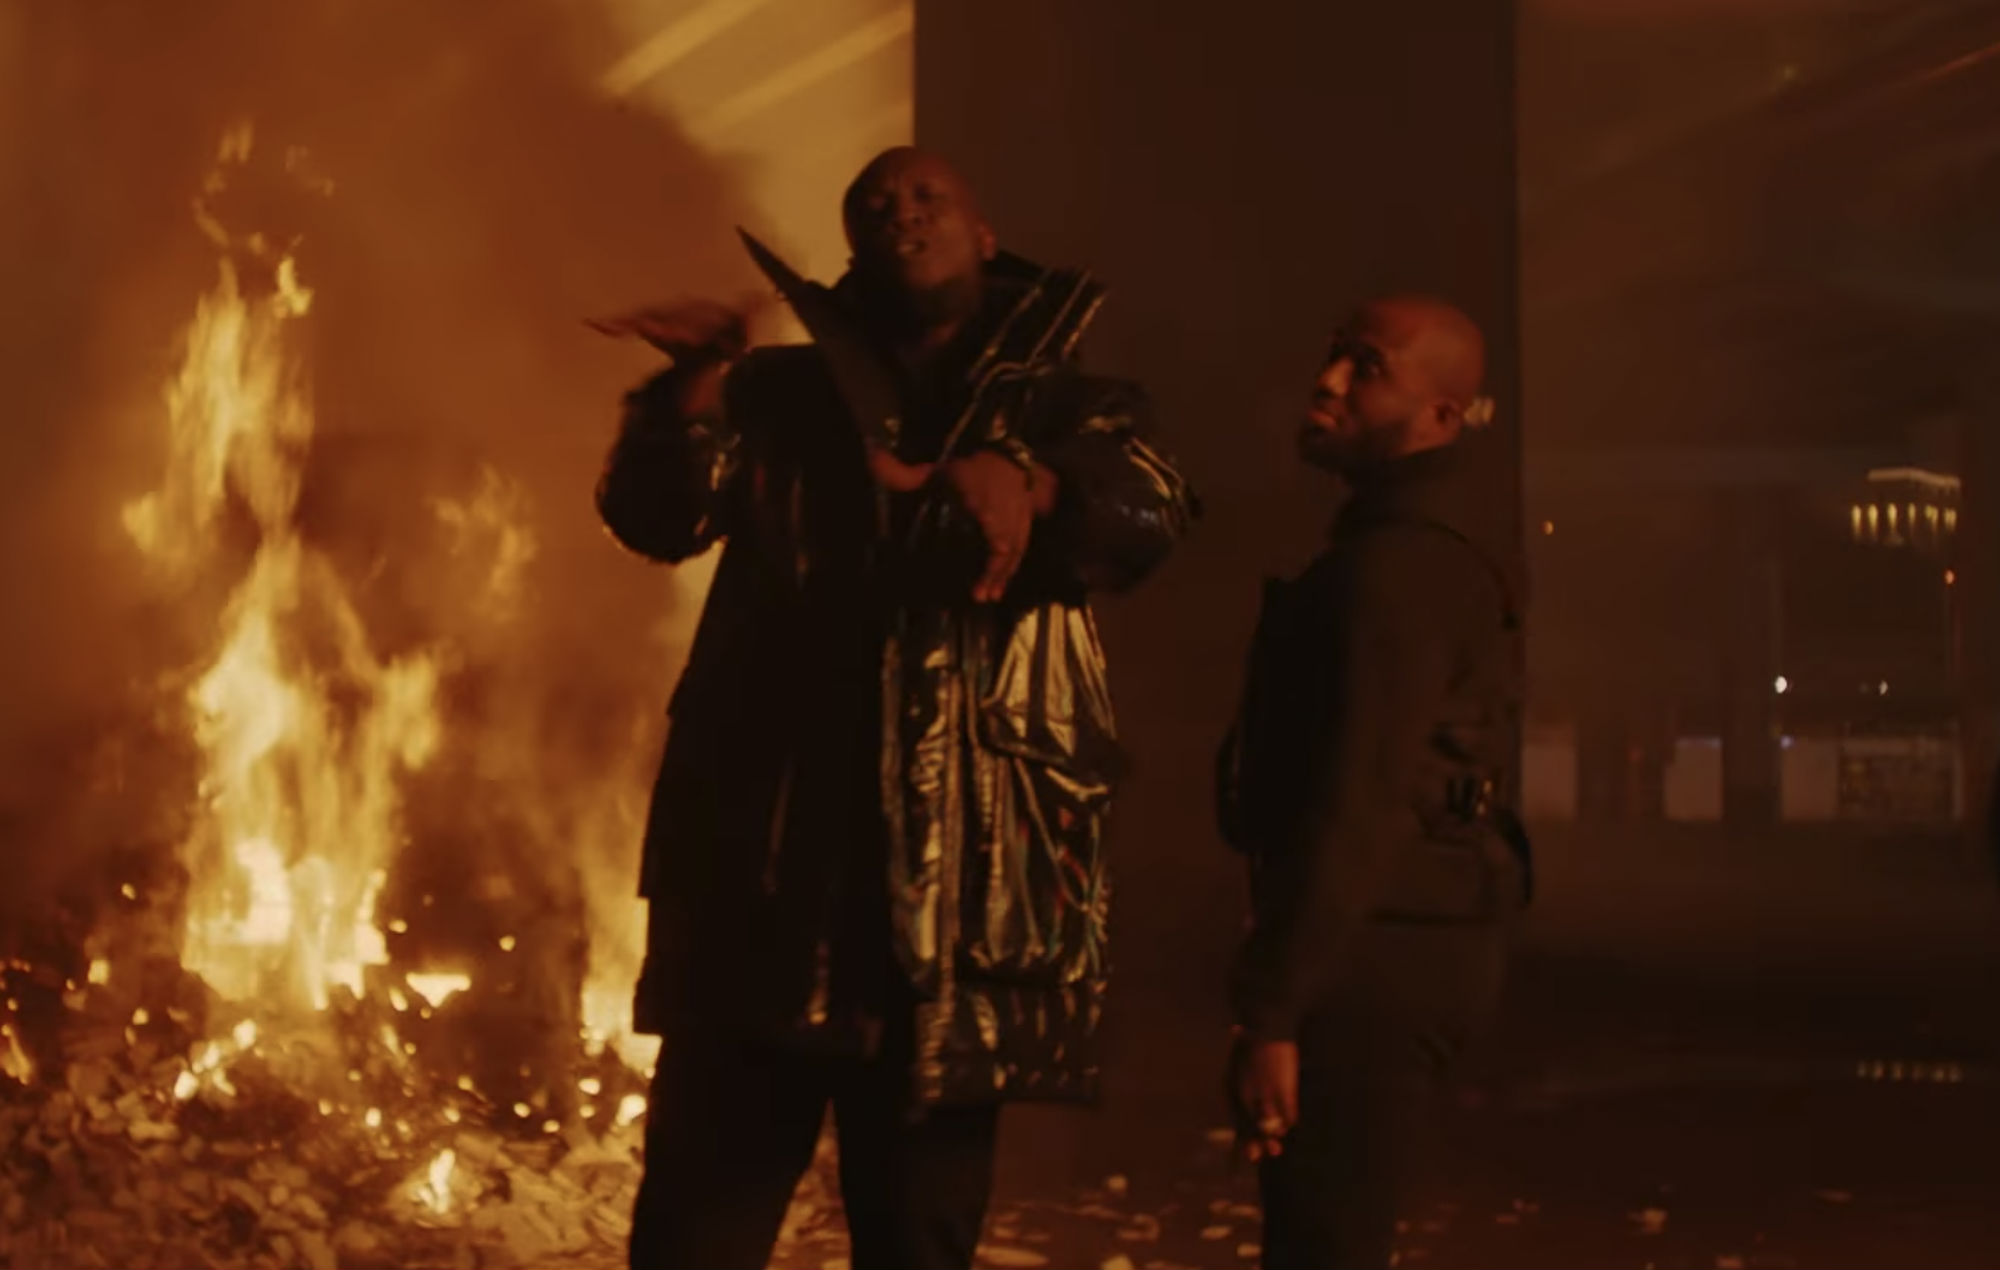 Stormzy and Headie One perform in the 'Audacity' video